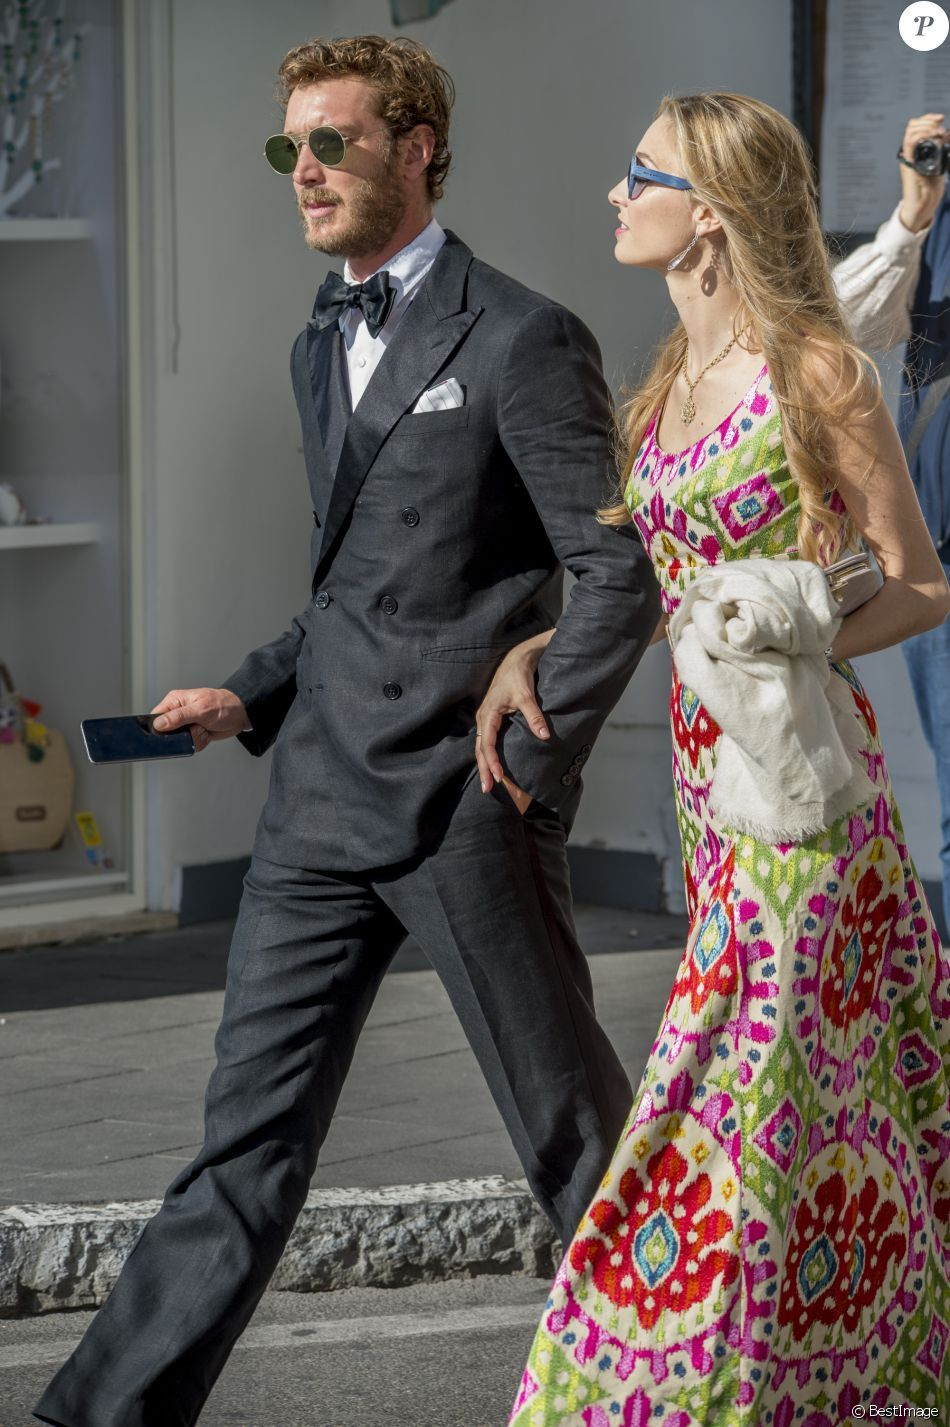 10 June 2016 - Pierre and Beatrice at the wedding of Giovanna Battaglia to Oscar Engelbert in Capri, Italy